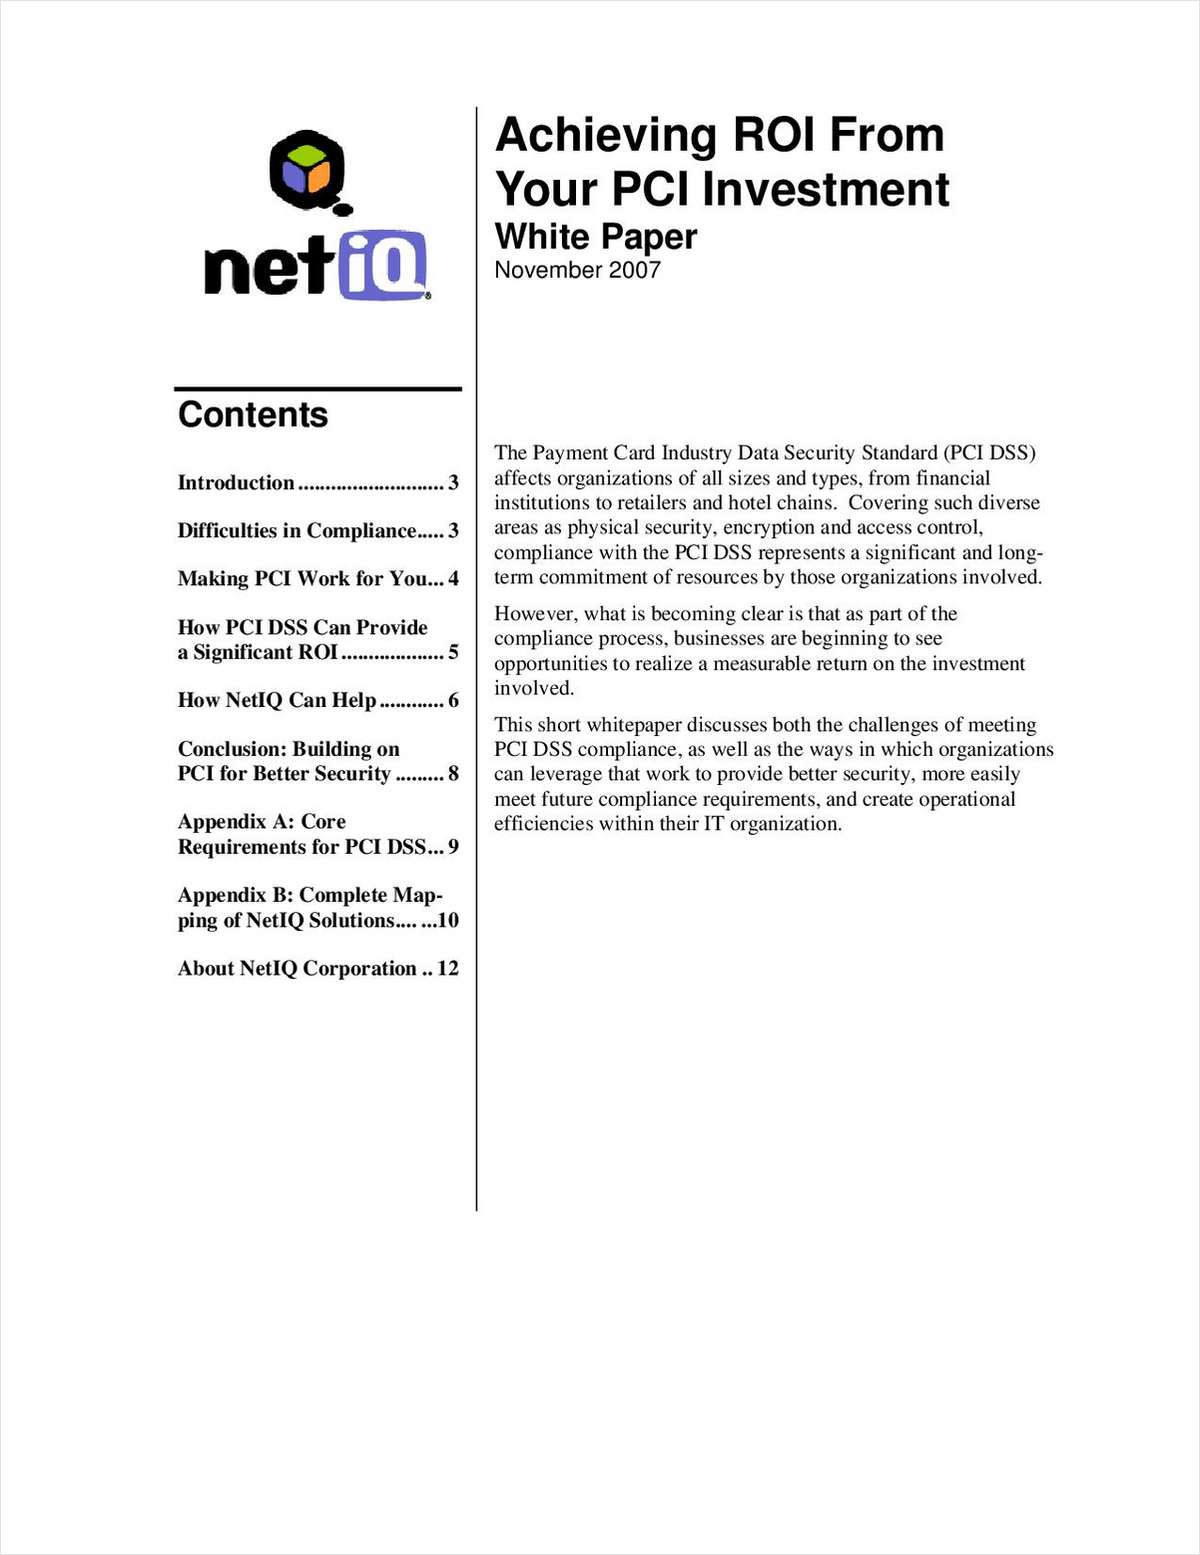 Achieving ROI from Your PCI Investment